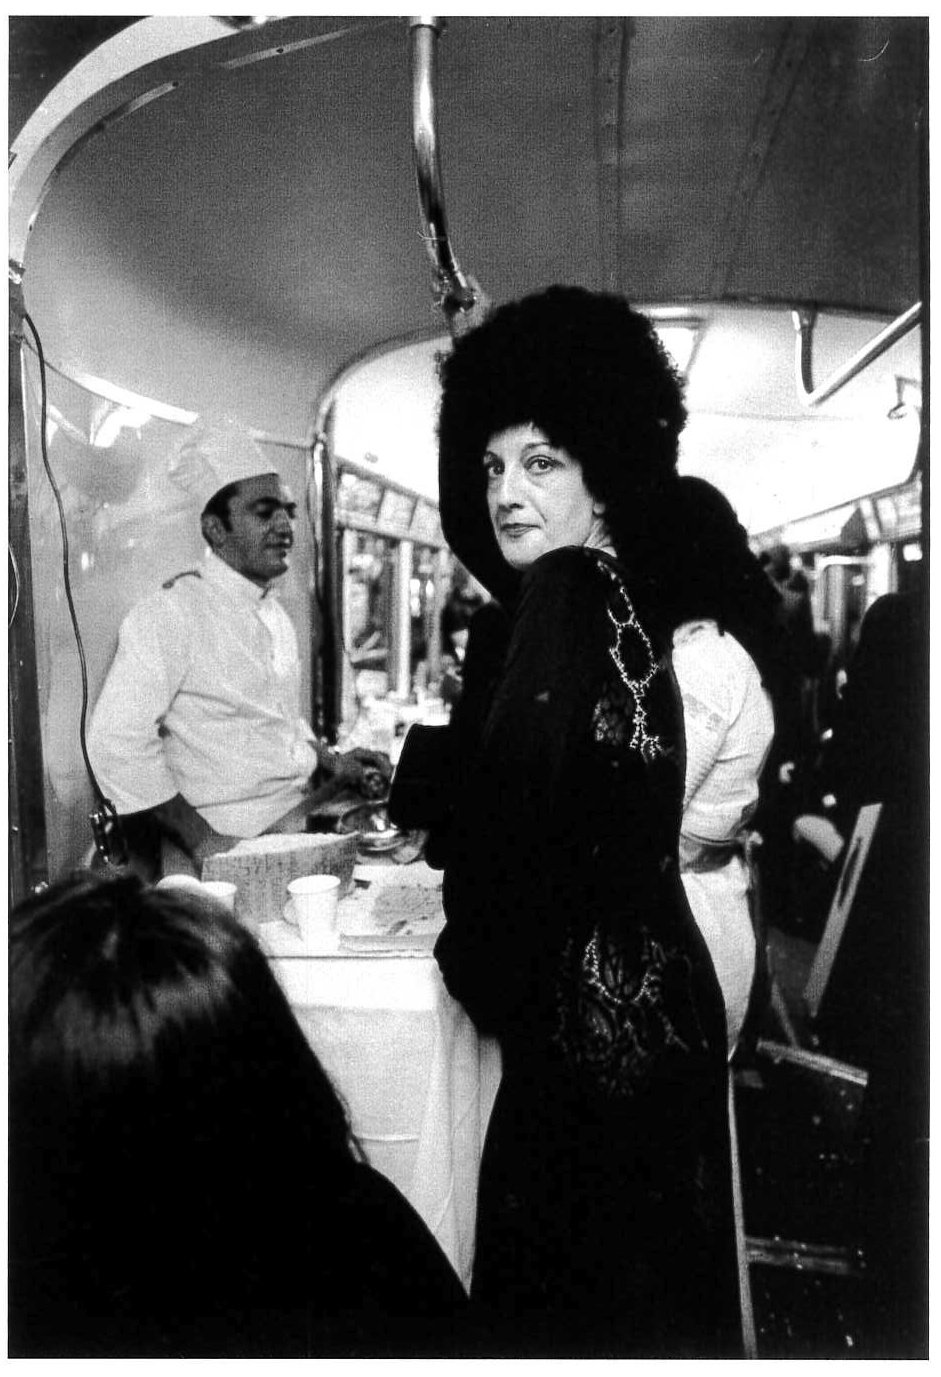 Tram, cocktail party organizzato per lo scultore Miguel Berrocal. Milano, 1971.